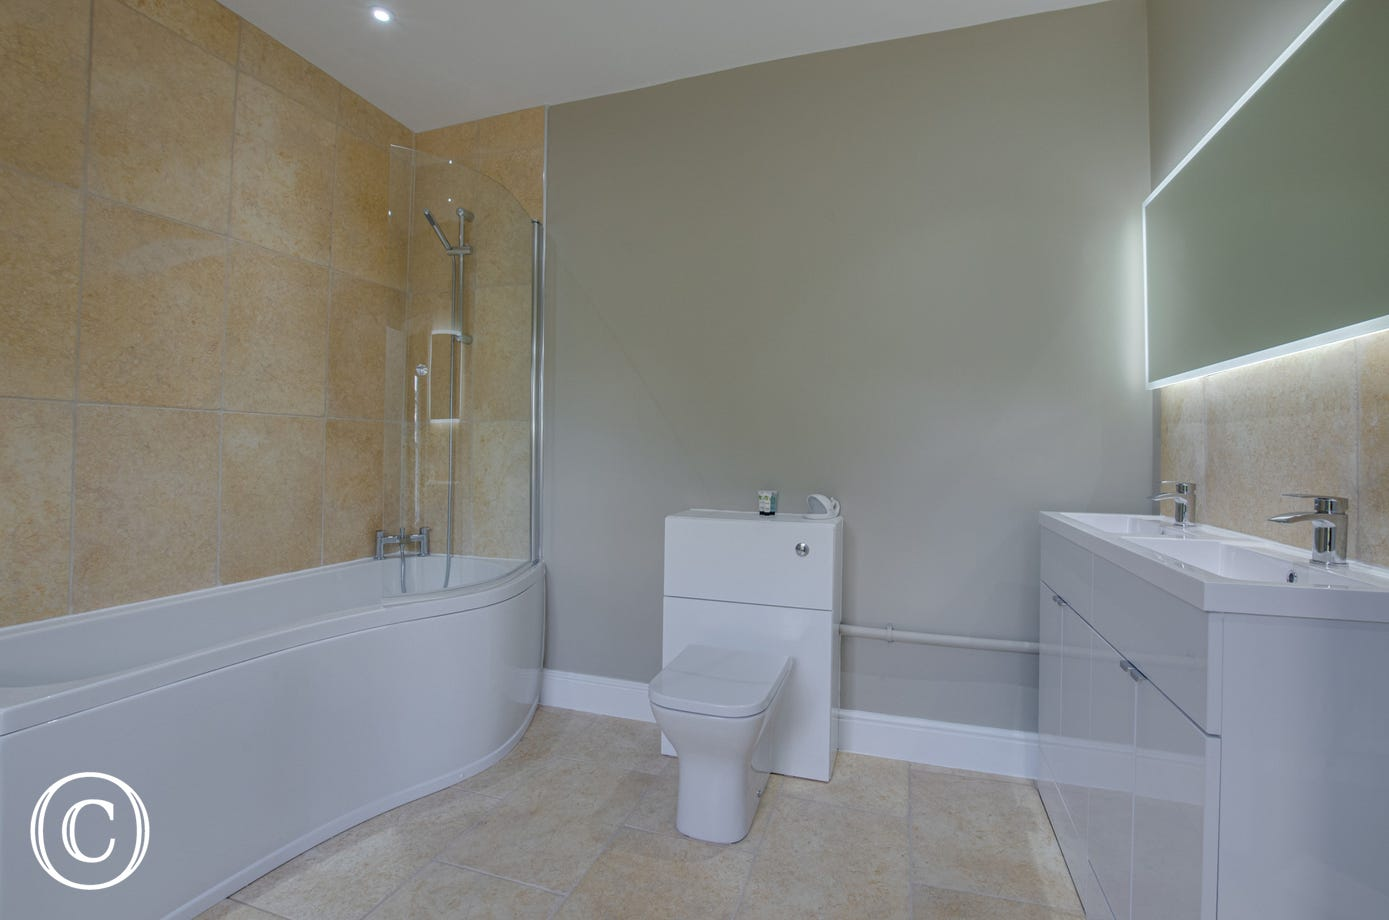 Bedroom 6 Ensuite with bath, overhead shower, two washbasins & wc